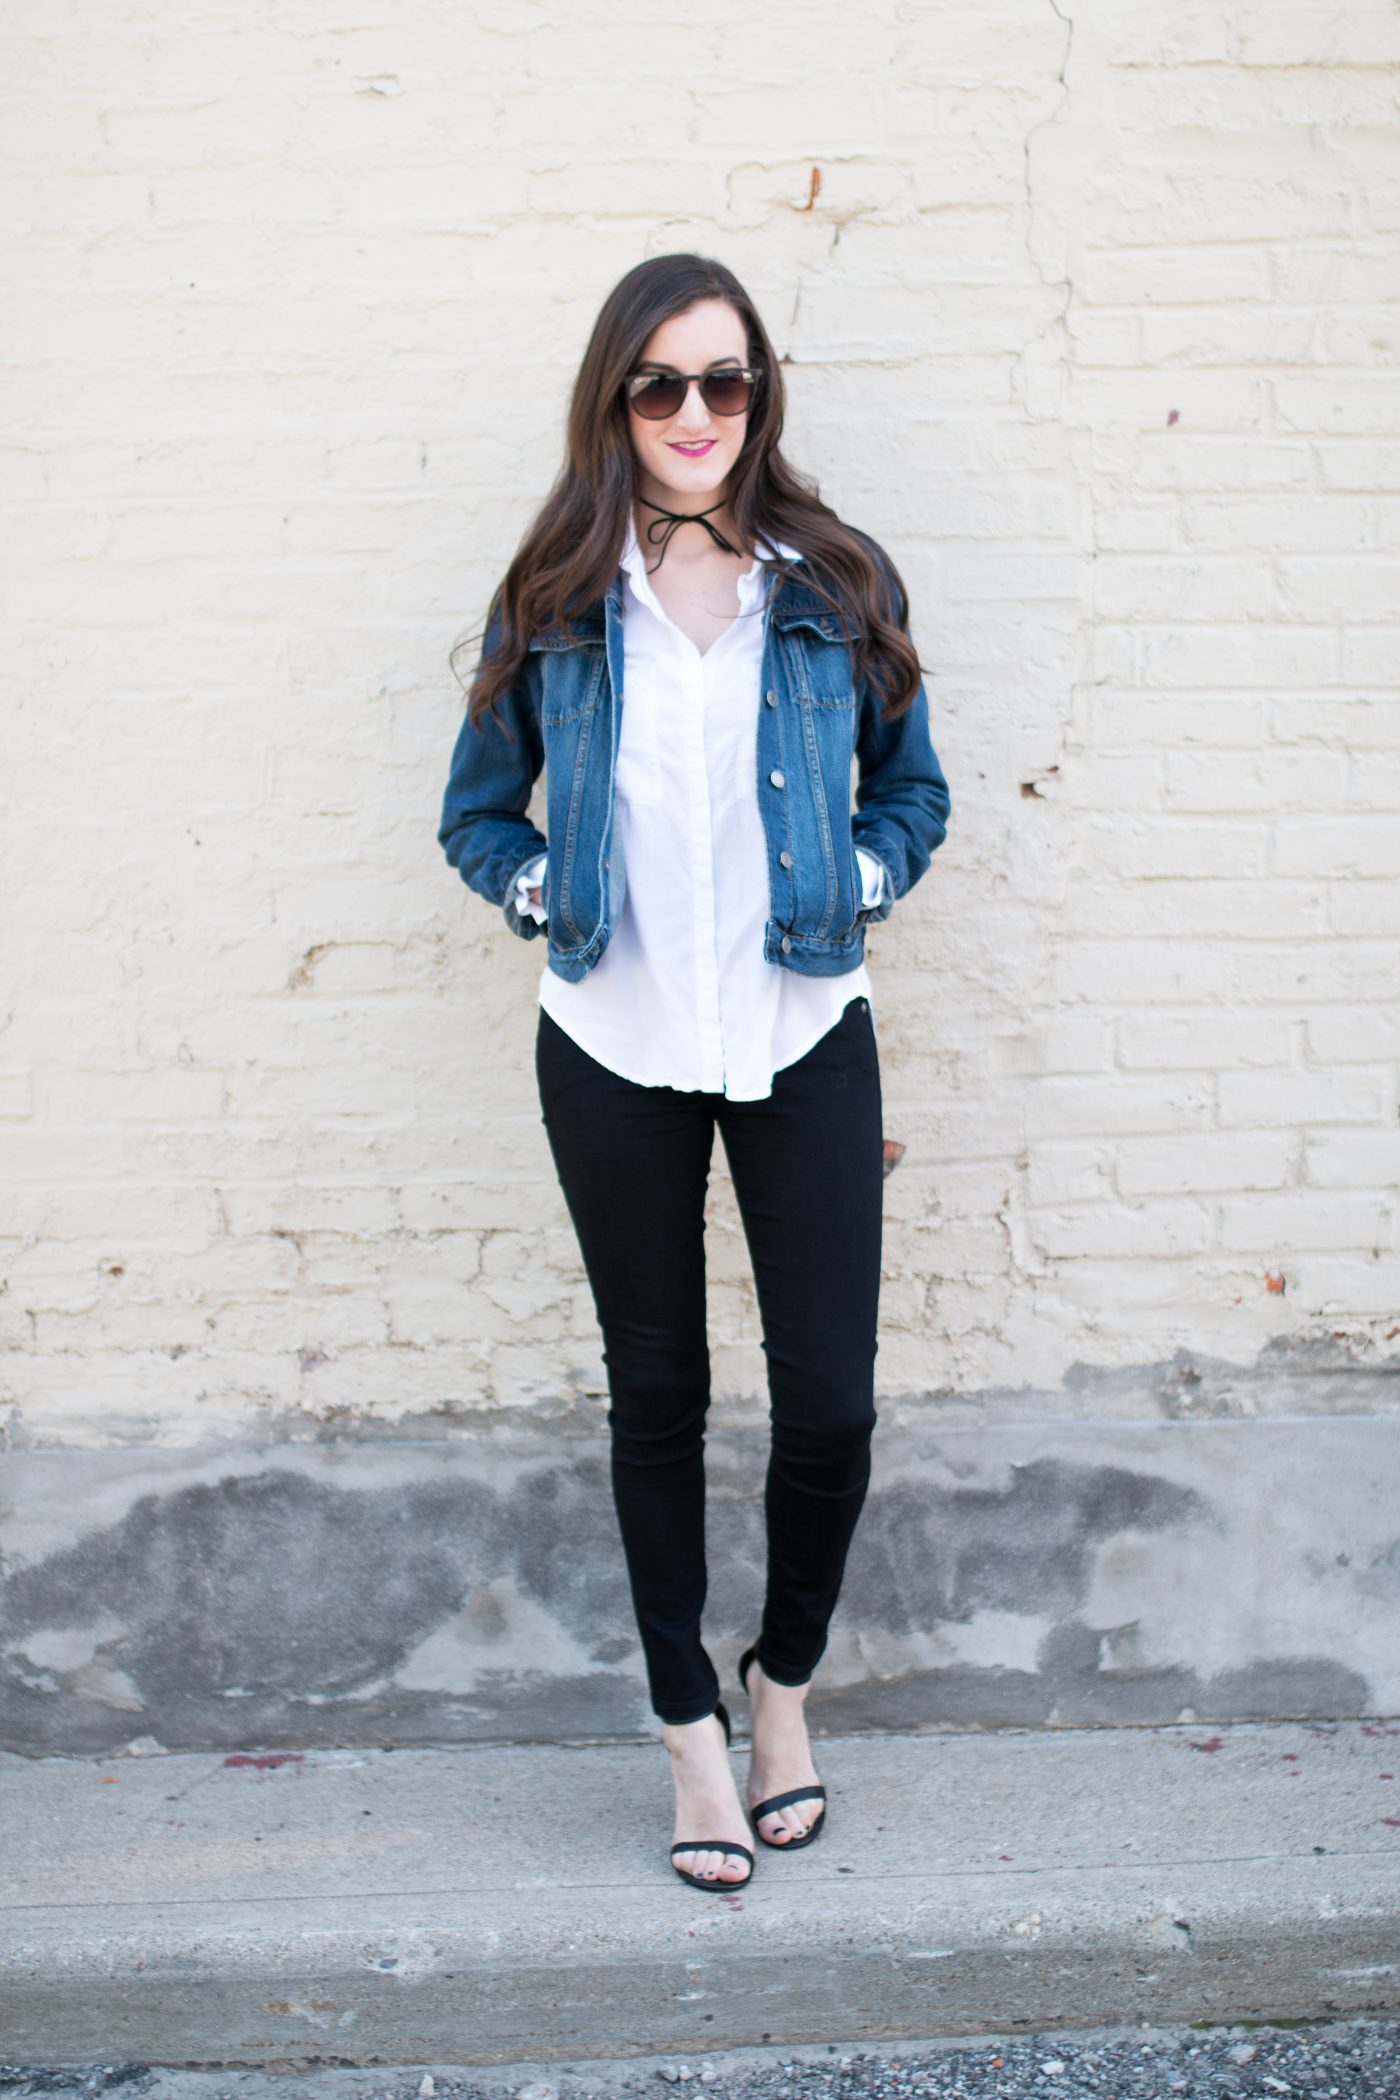 Denim Jacket Outfit Ideas